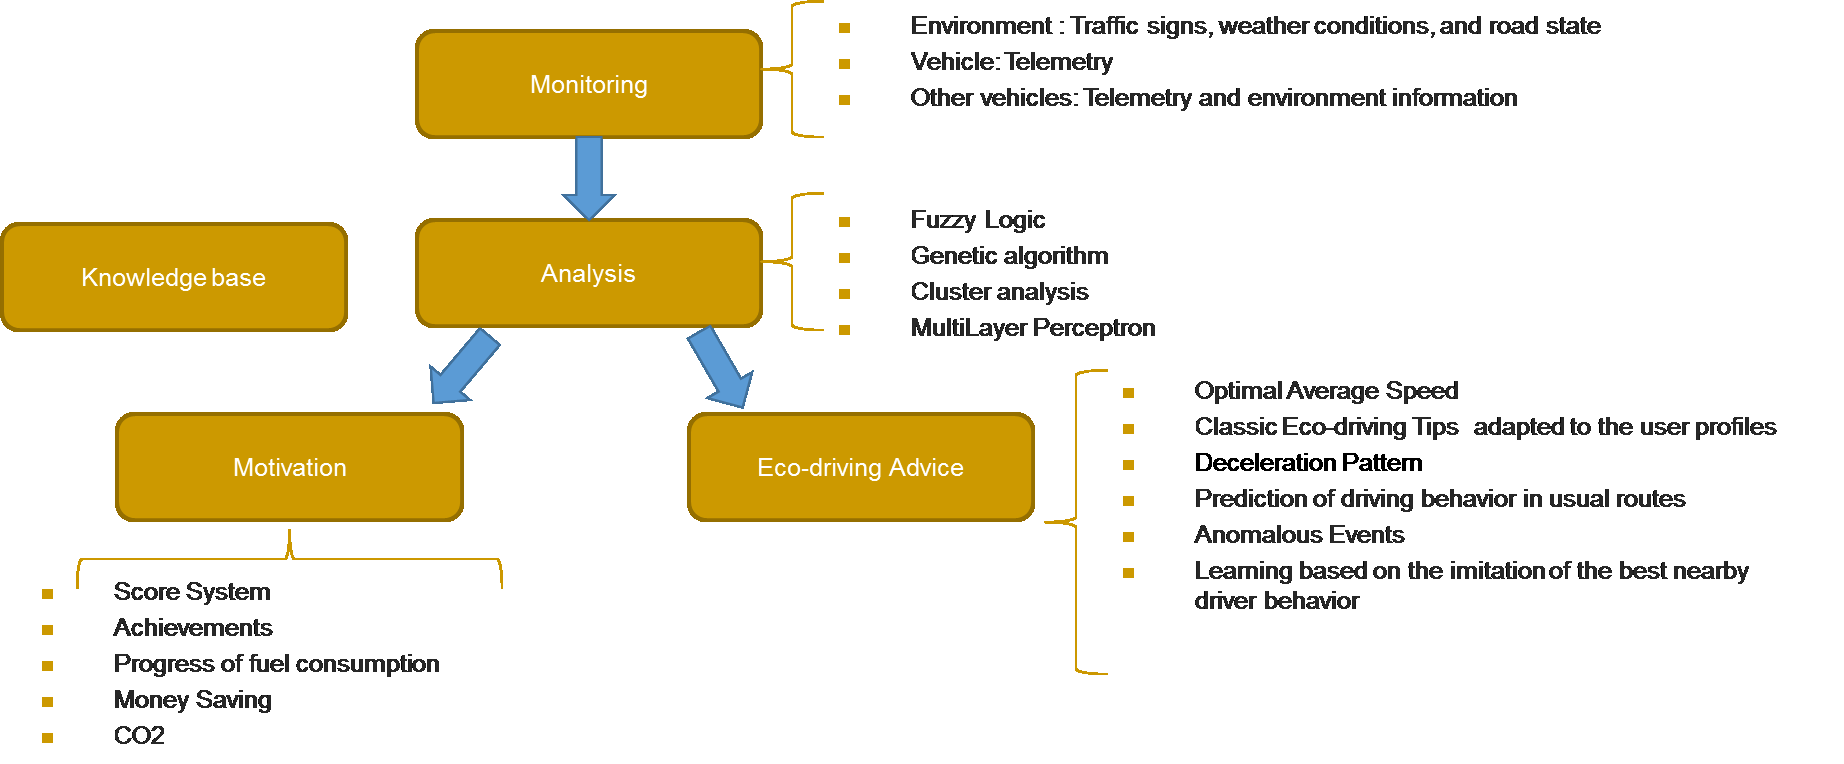 50 Figure 3. Architecture of Eco-Driving Assistant. Fuel consumption depends on the vehicle, the environment and the behavior of the driver.